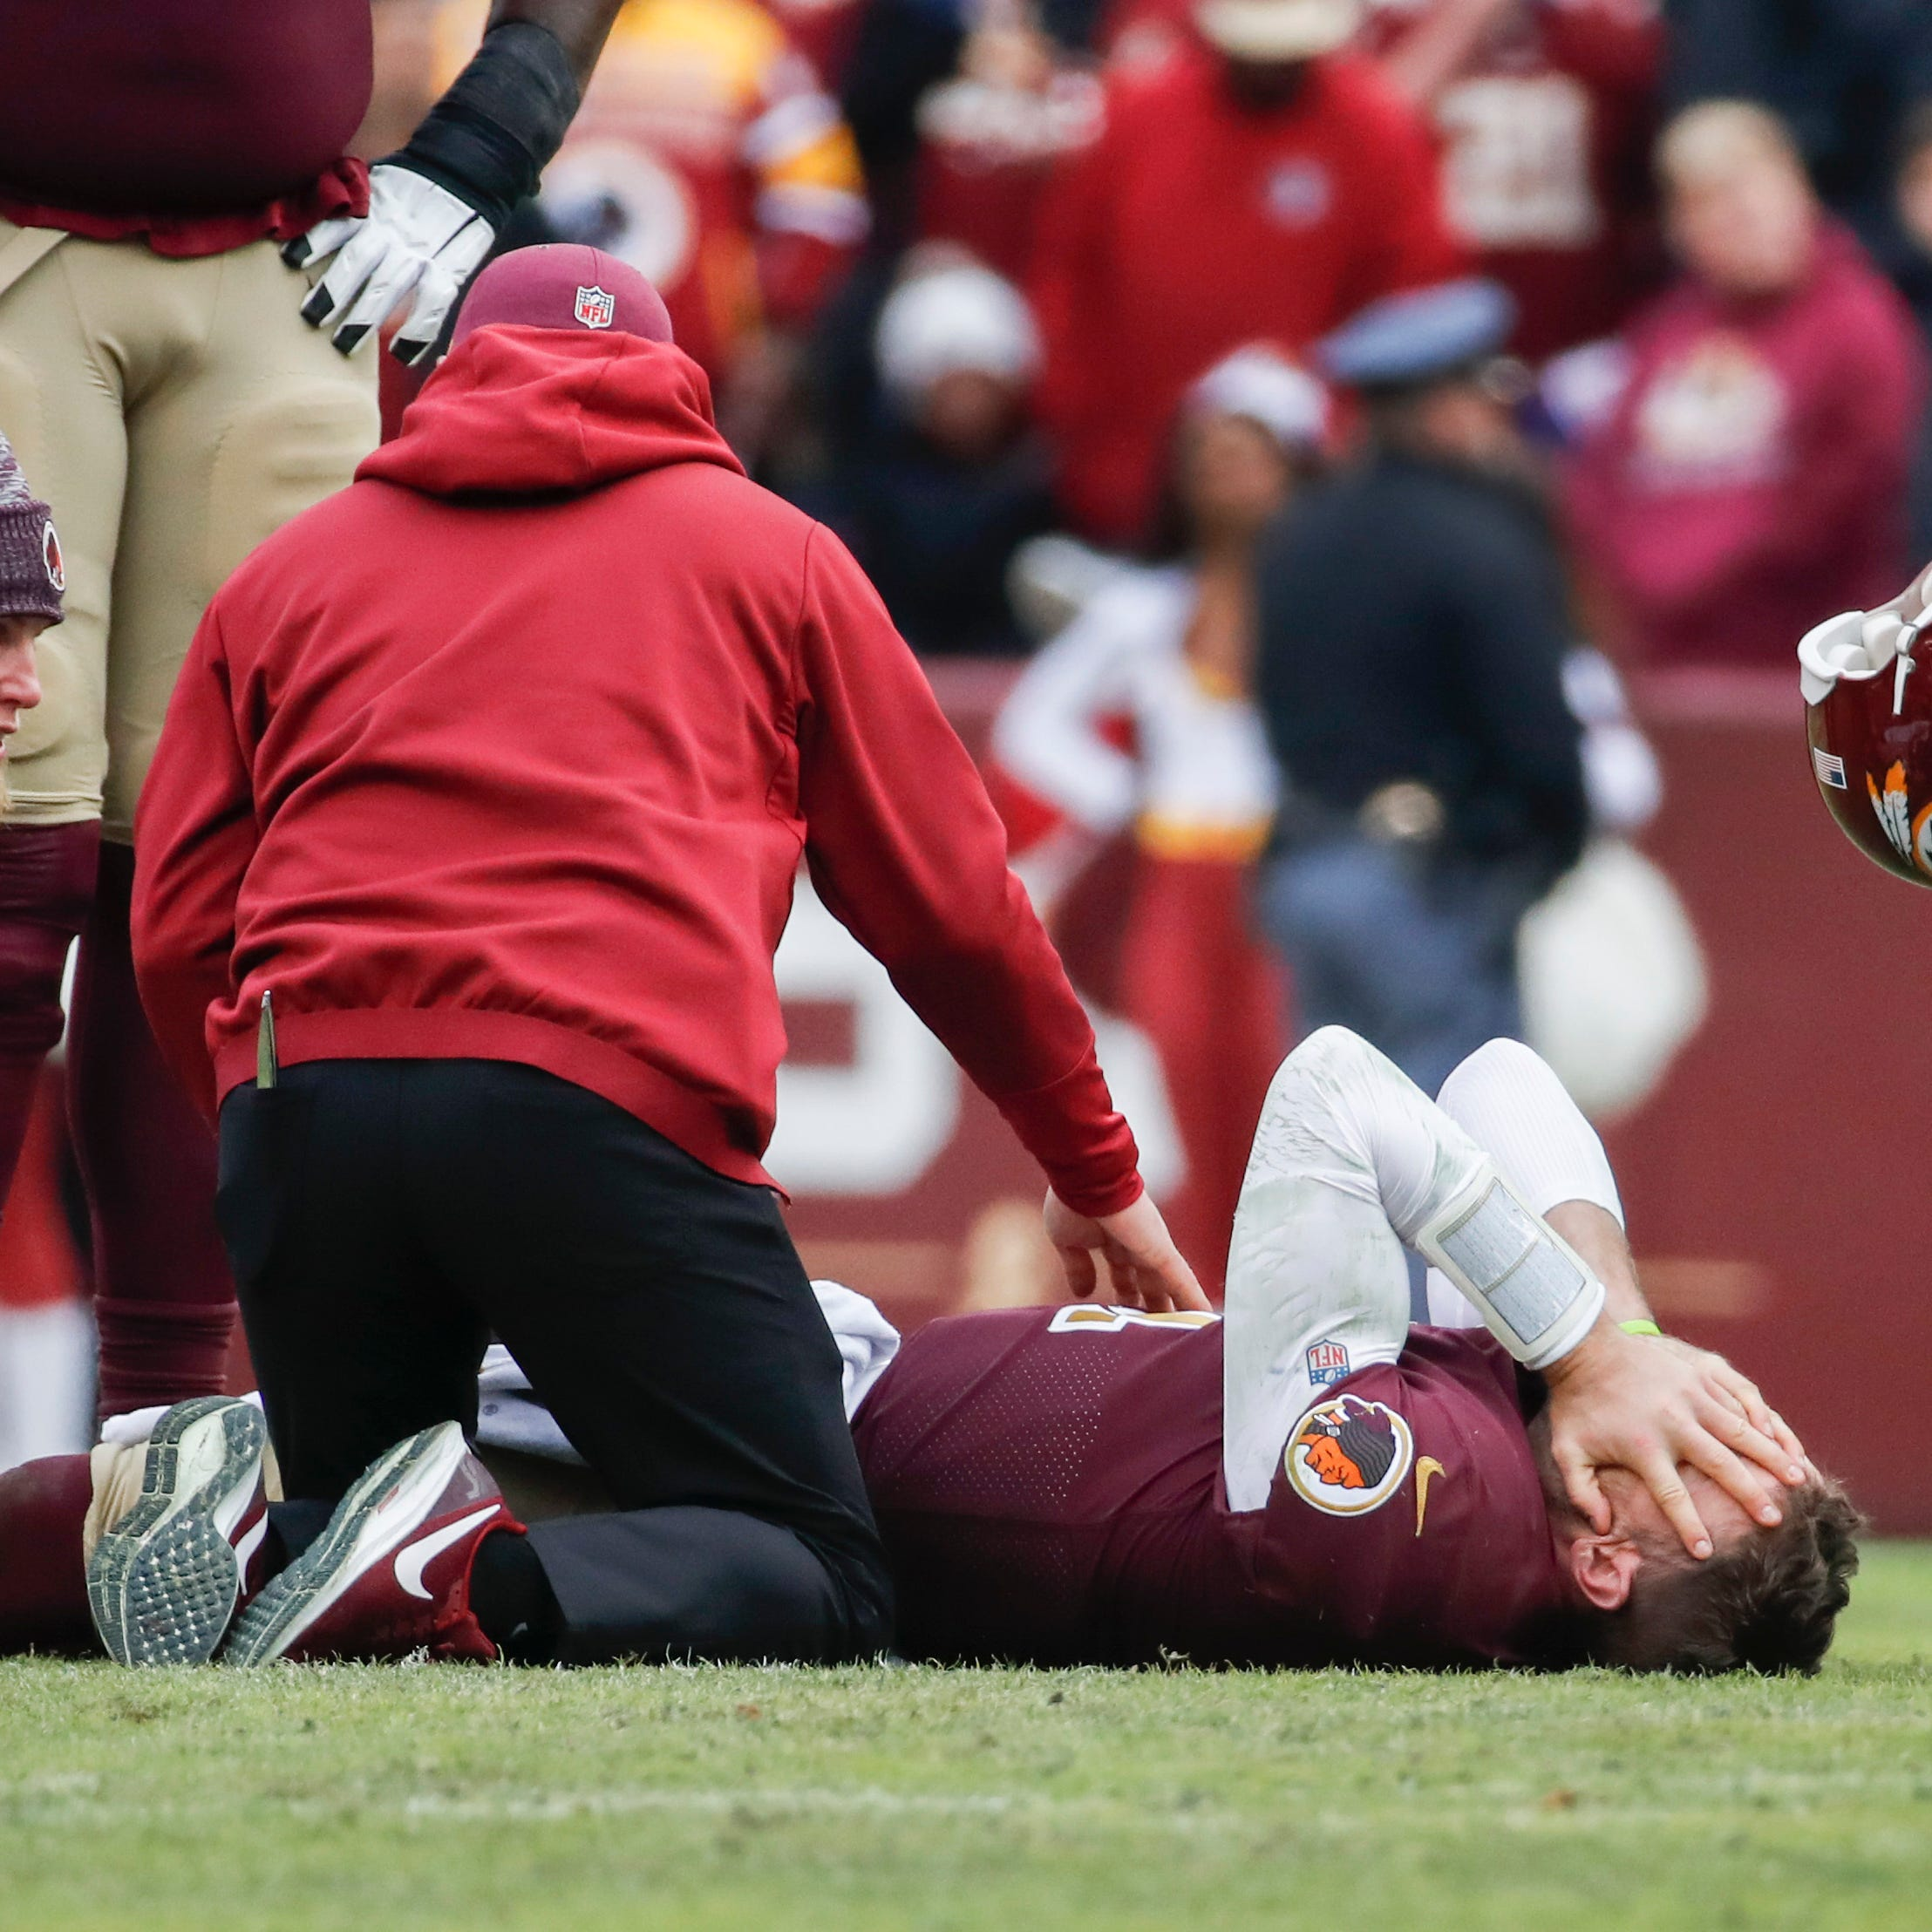 Joe Theismann 'turned away' after seeing Redskins quarterback Alex Smith hurt